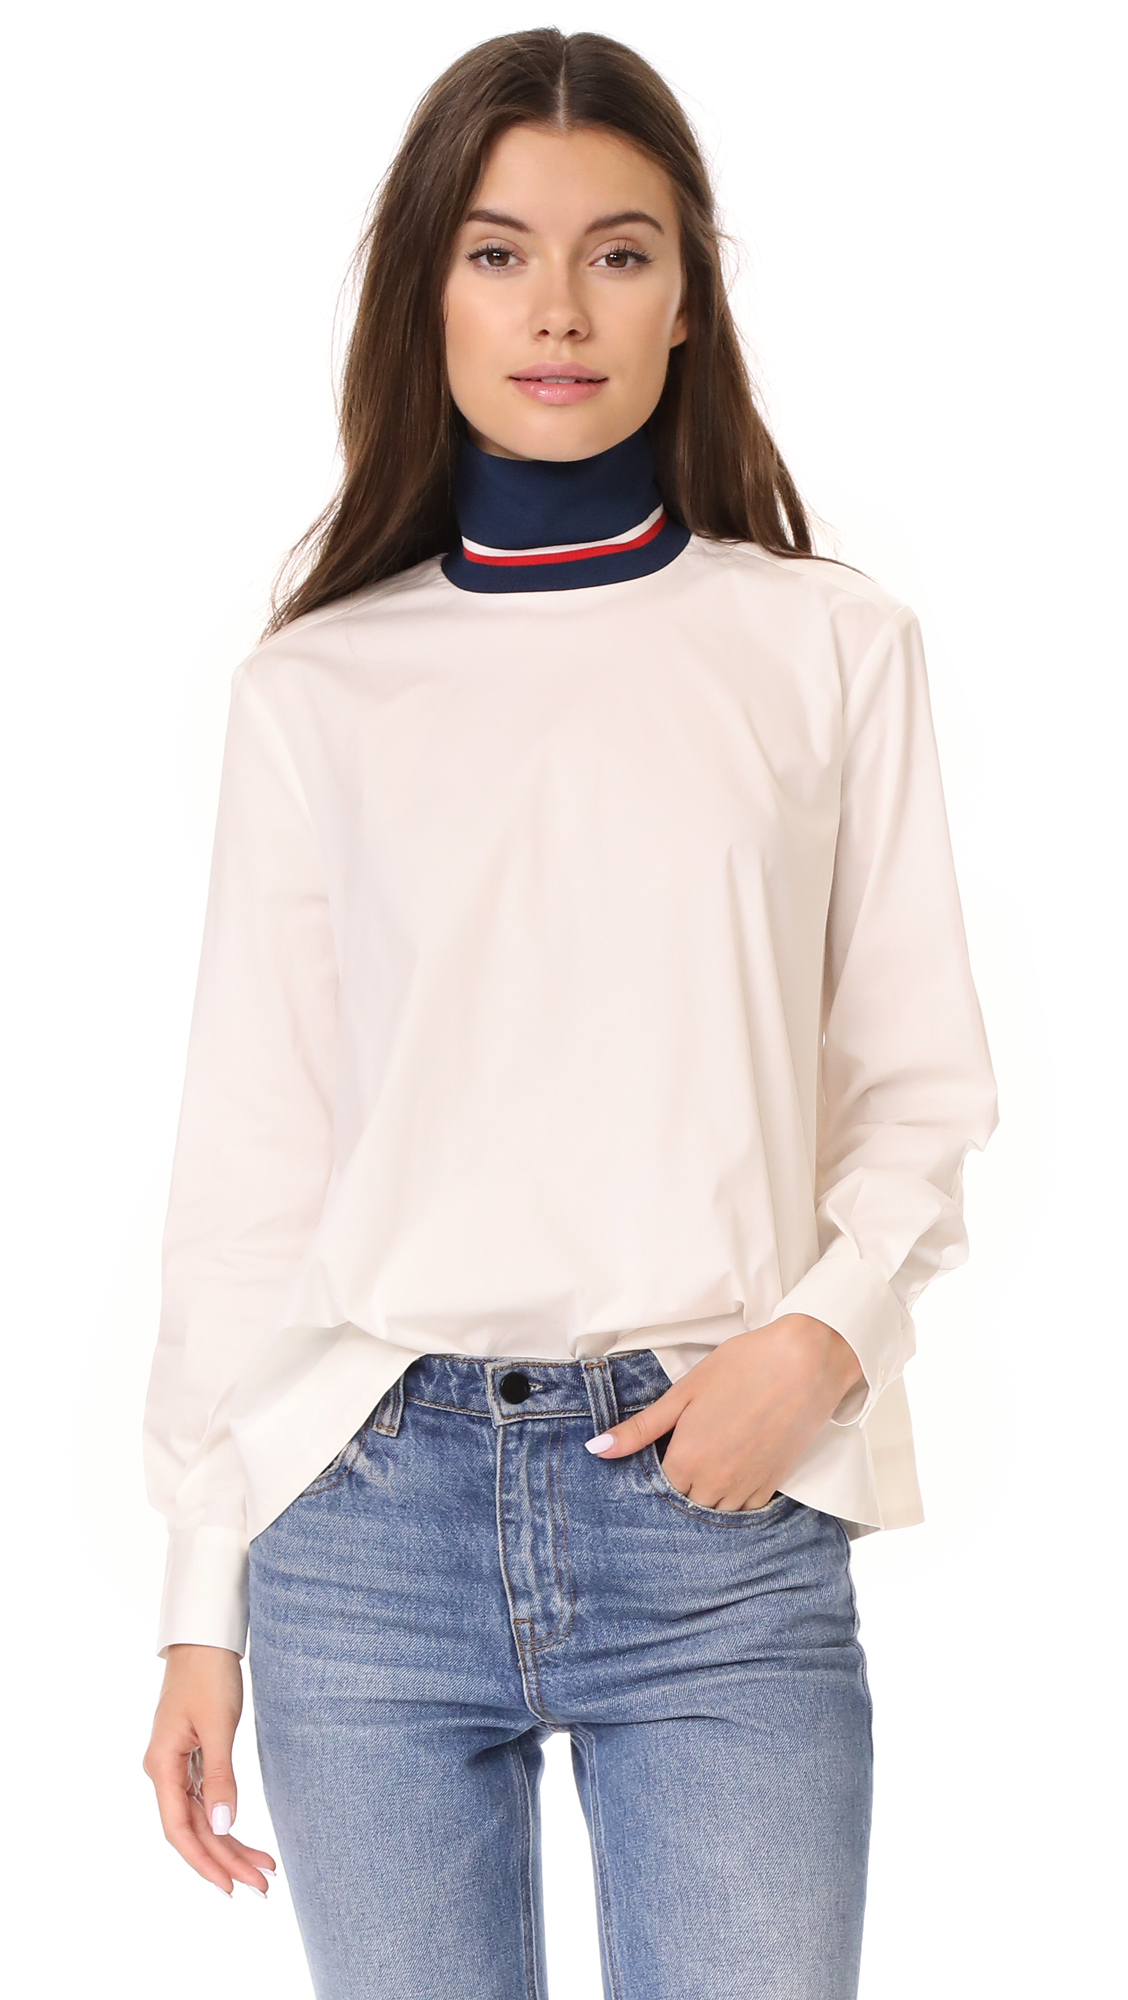 Hilfiger Collection Corp High Neck Shirt - Snow White